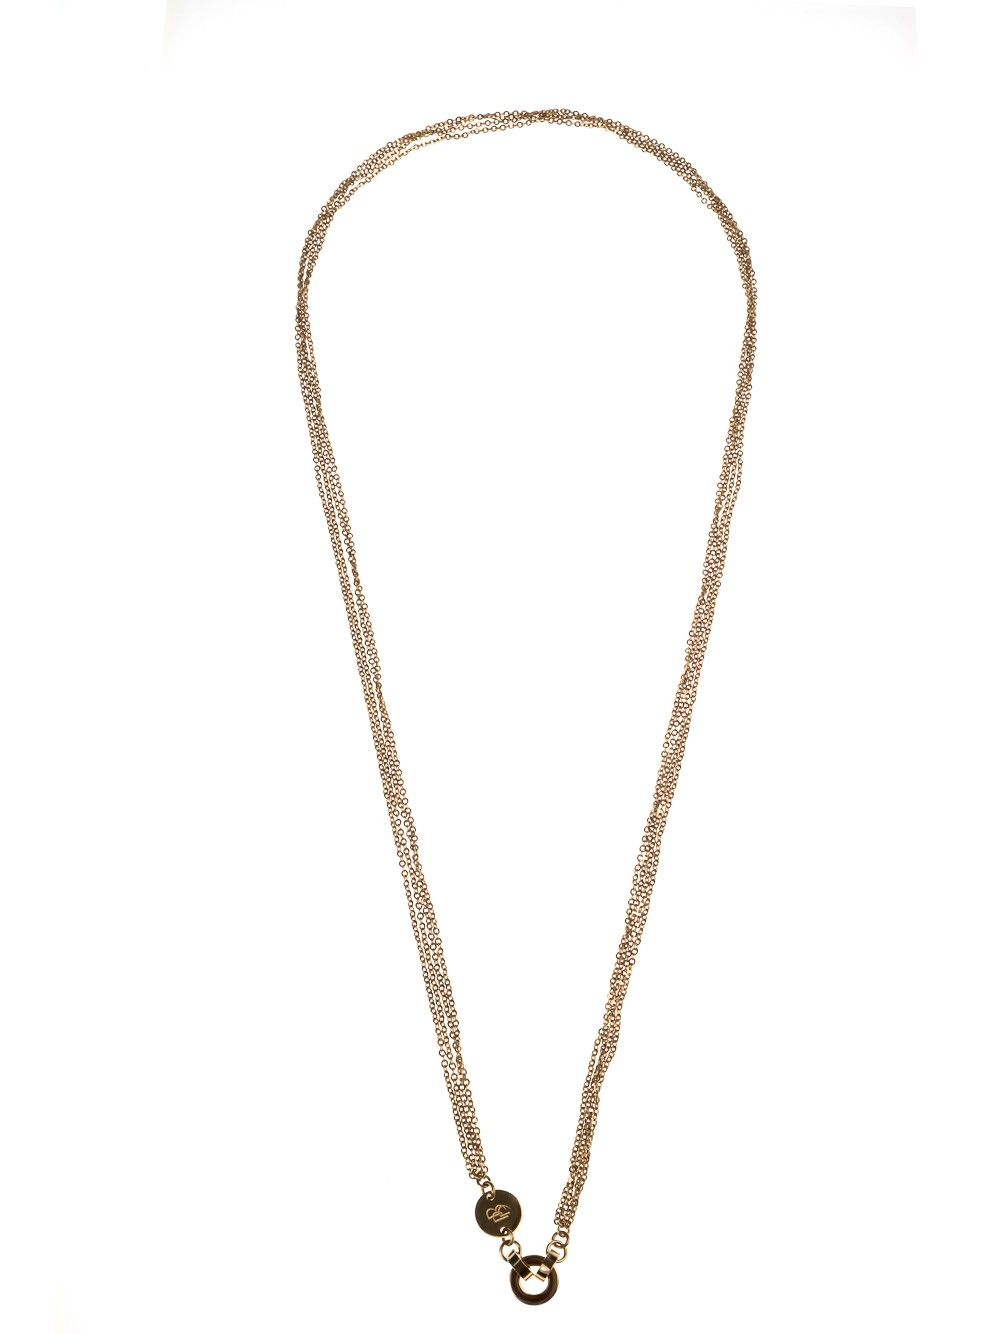 Necklace featuring four stainless steel diamond-chain strands plated with IP 14K gold and clip system - classic, glittering, the necklace brings a voguish look.